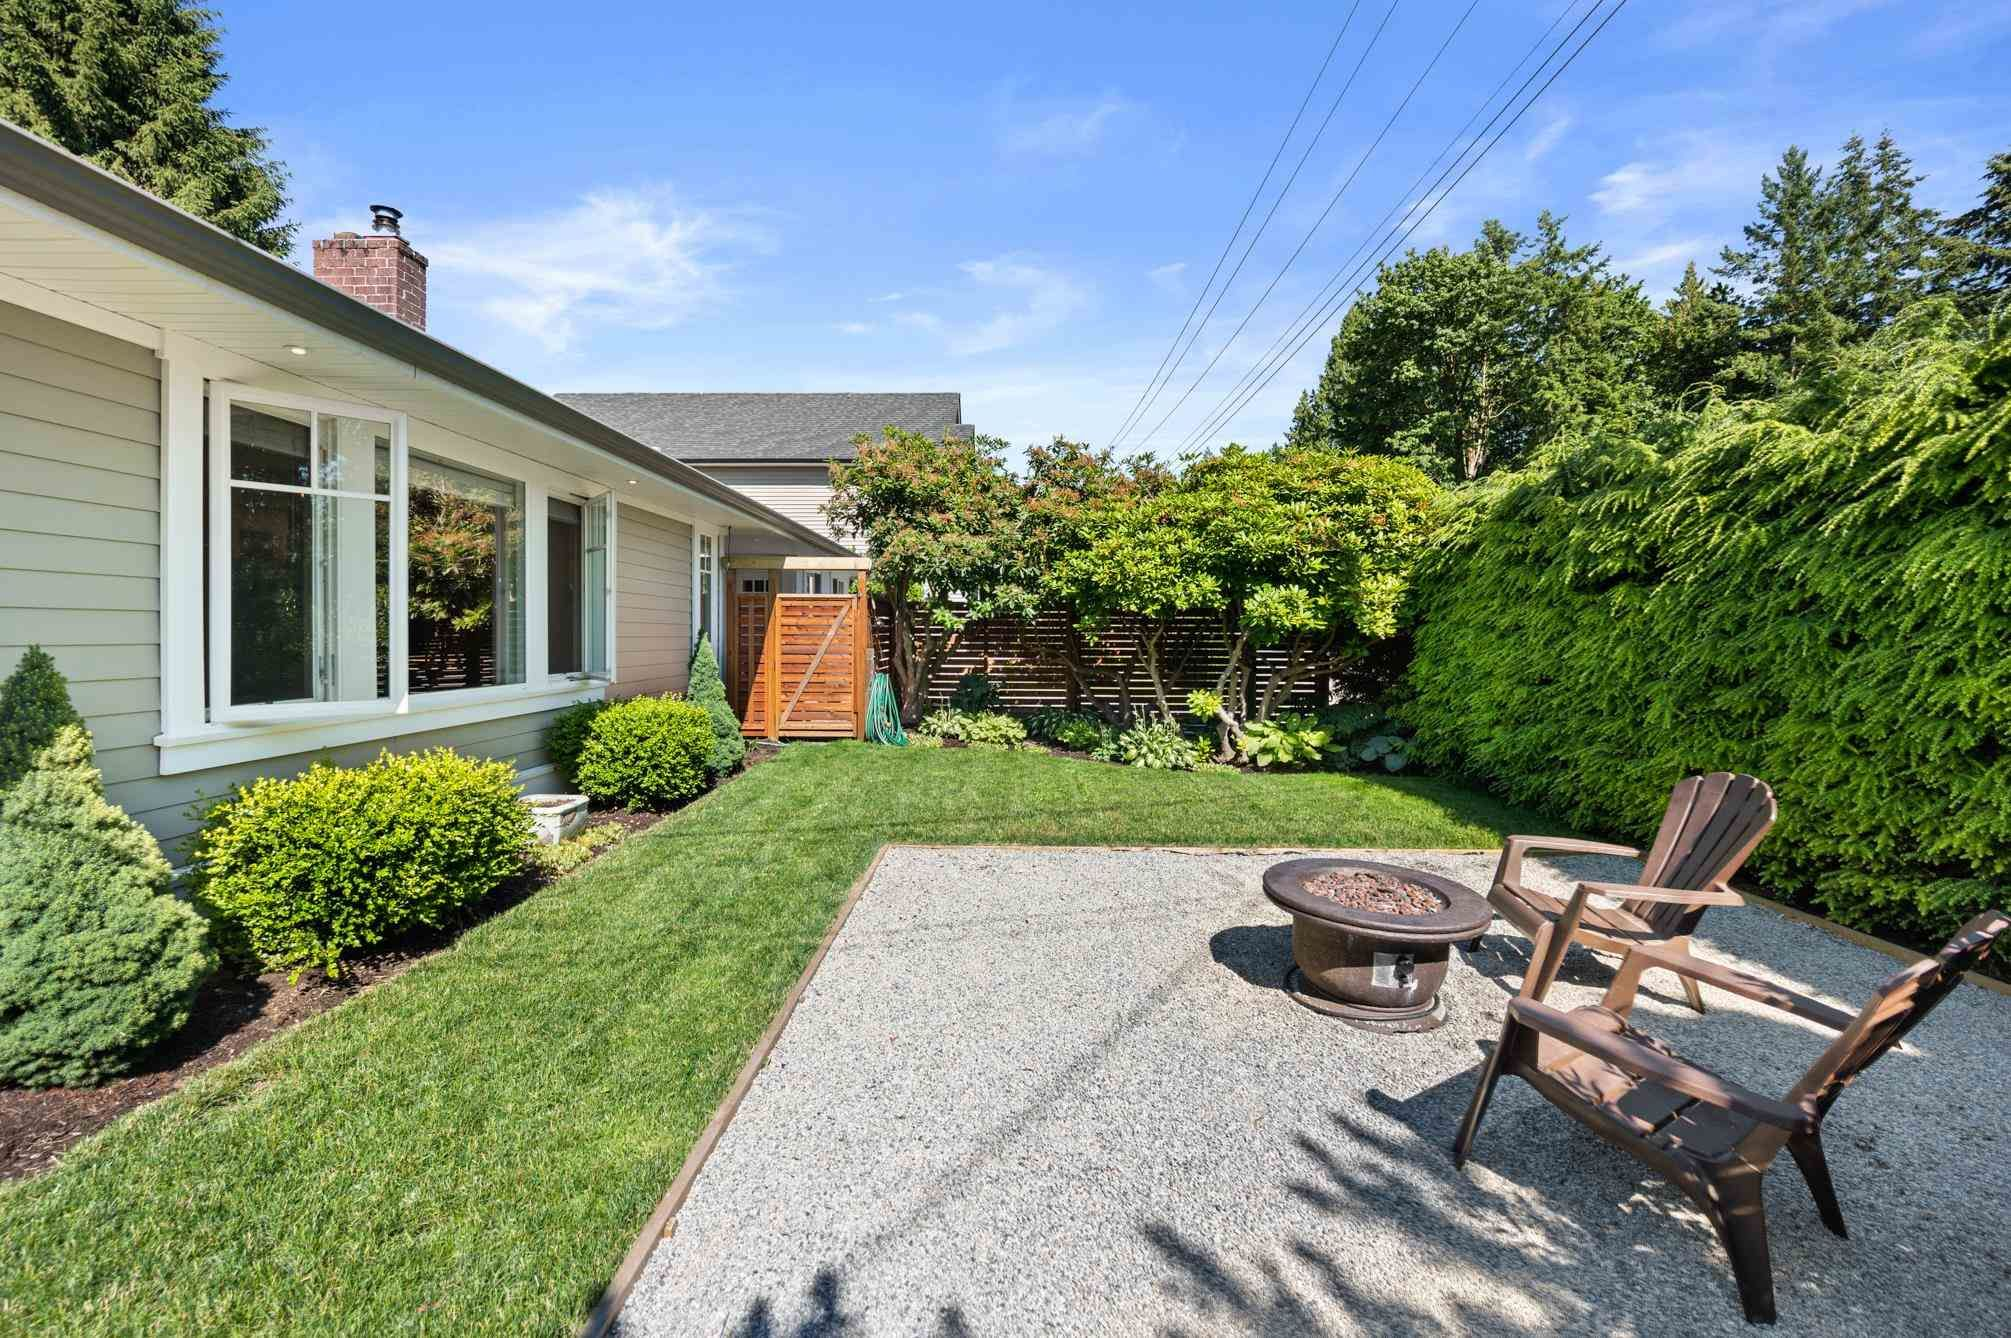 Photo 6: Photos: 32459 7TH Avenue in Mission: Mission BC House for sale : MLS®# R2595099